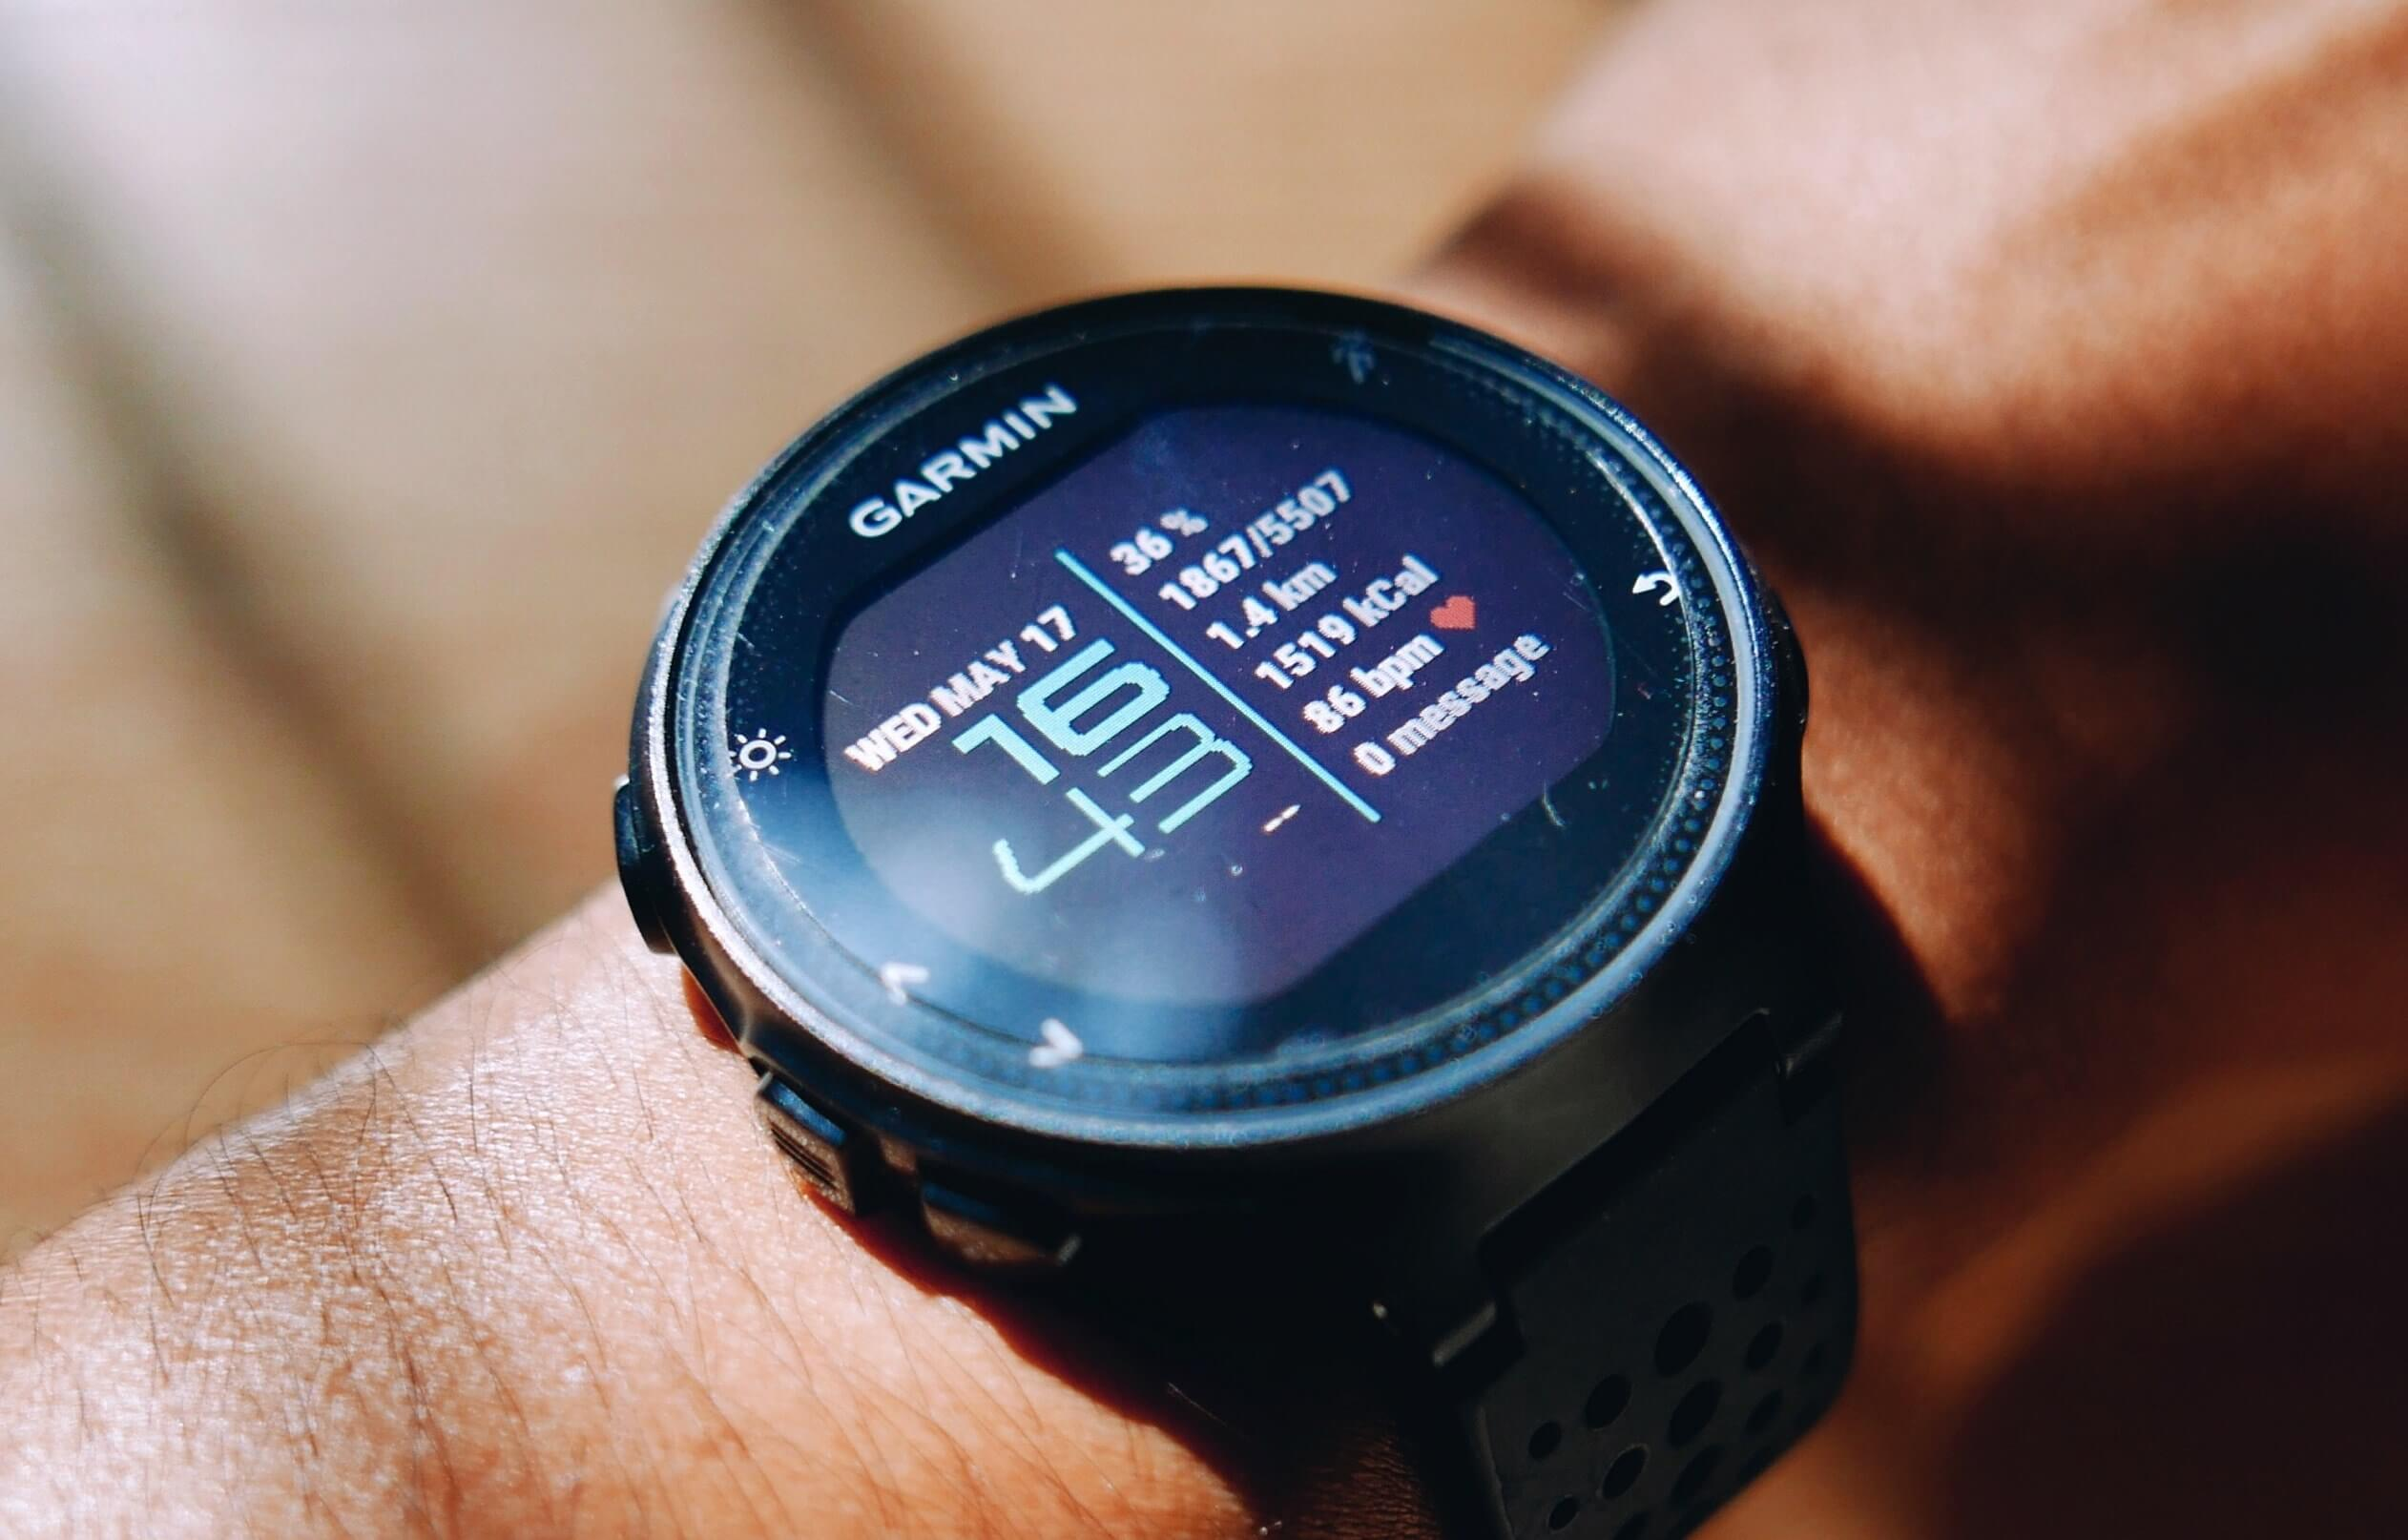 Garmin confirms cyberattack caused last week's company-wide outage